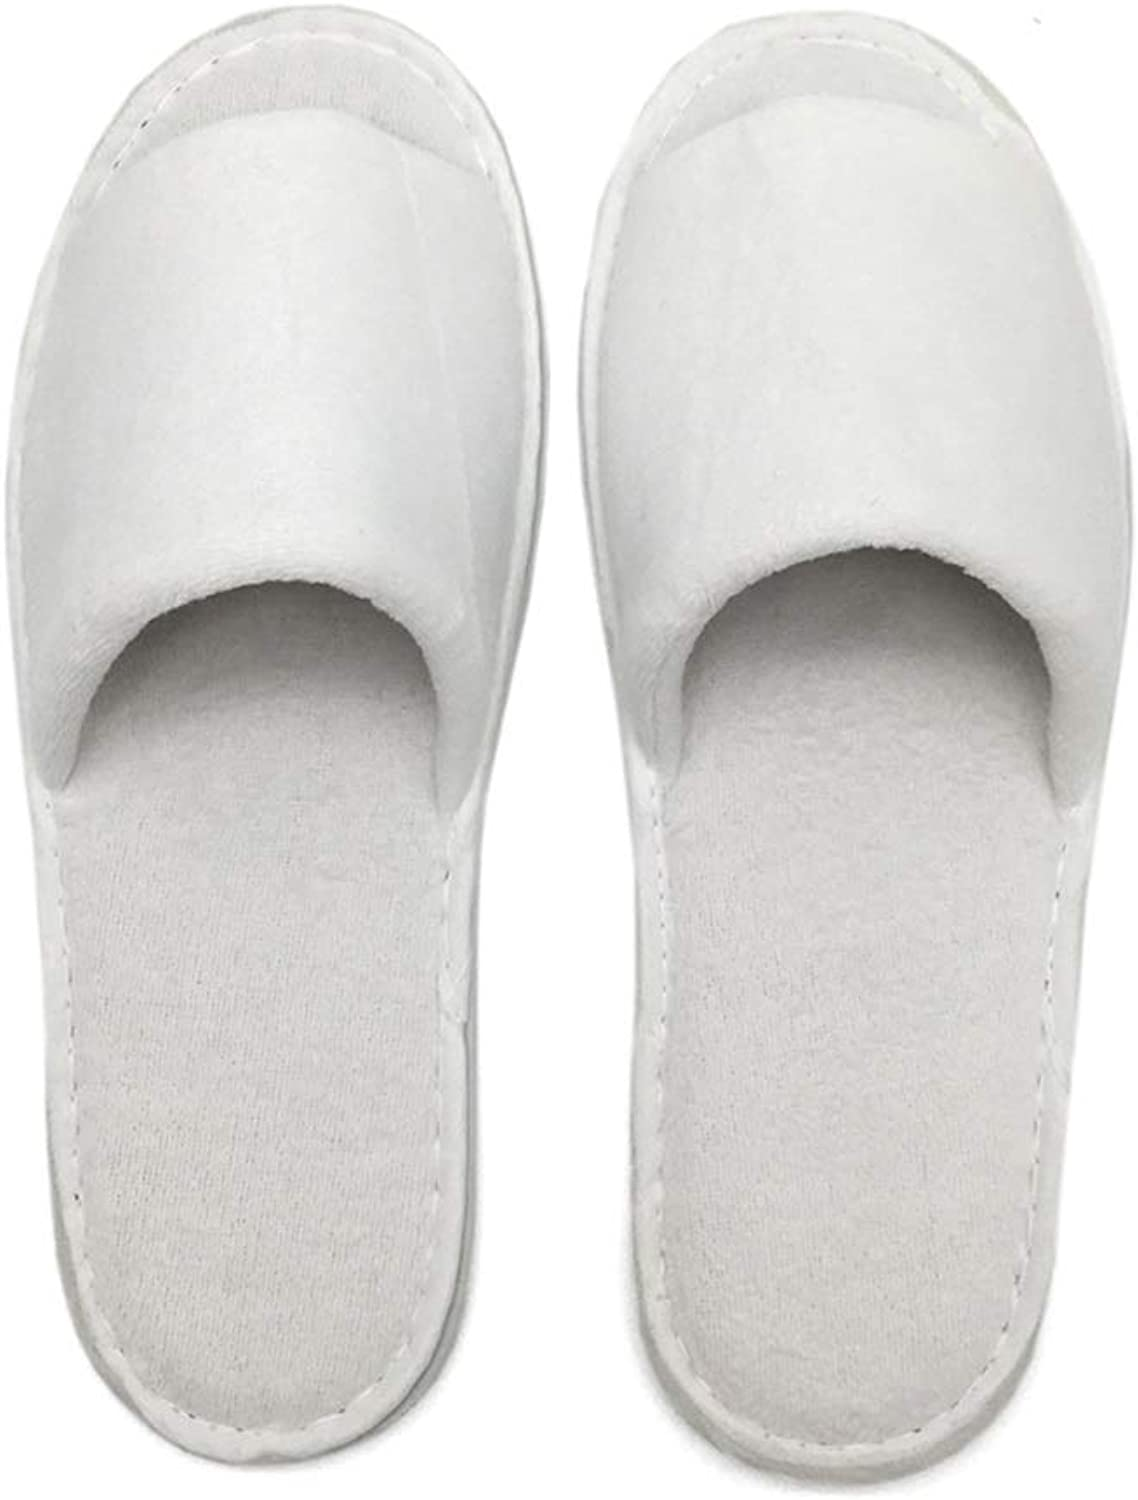 Zyy Disposable Slippers-10 Pairs,Thicken Cotton Flip Flop One Size Comfortable Warm Winter For Home Hotel White